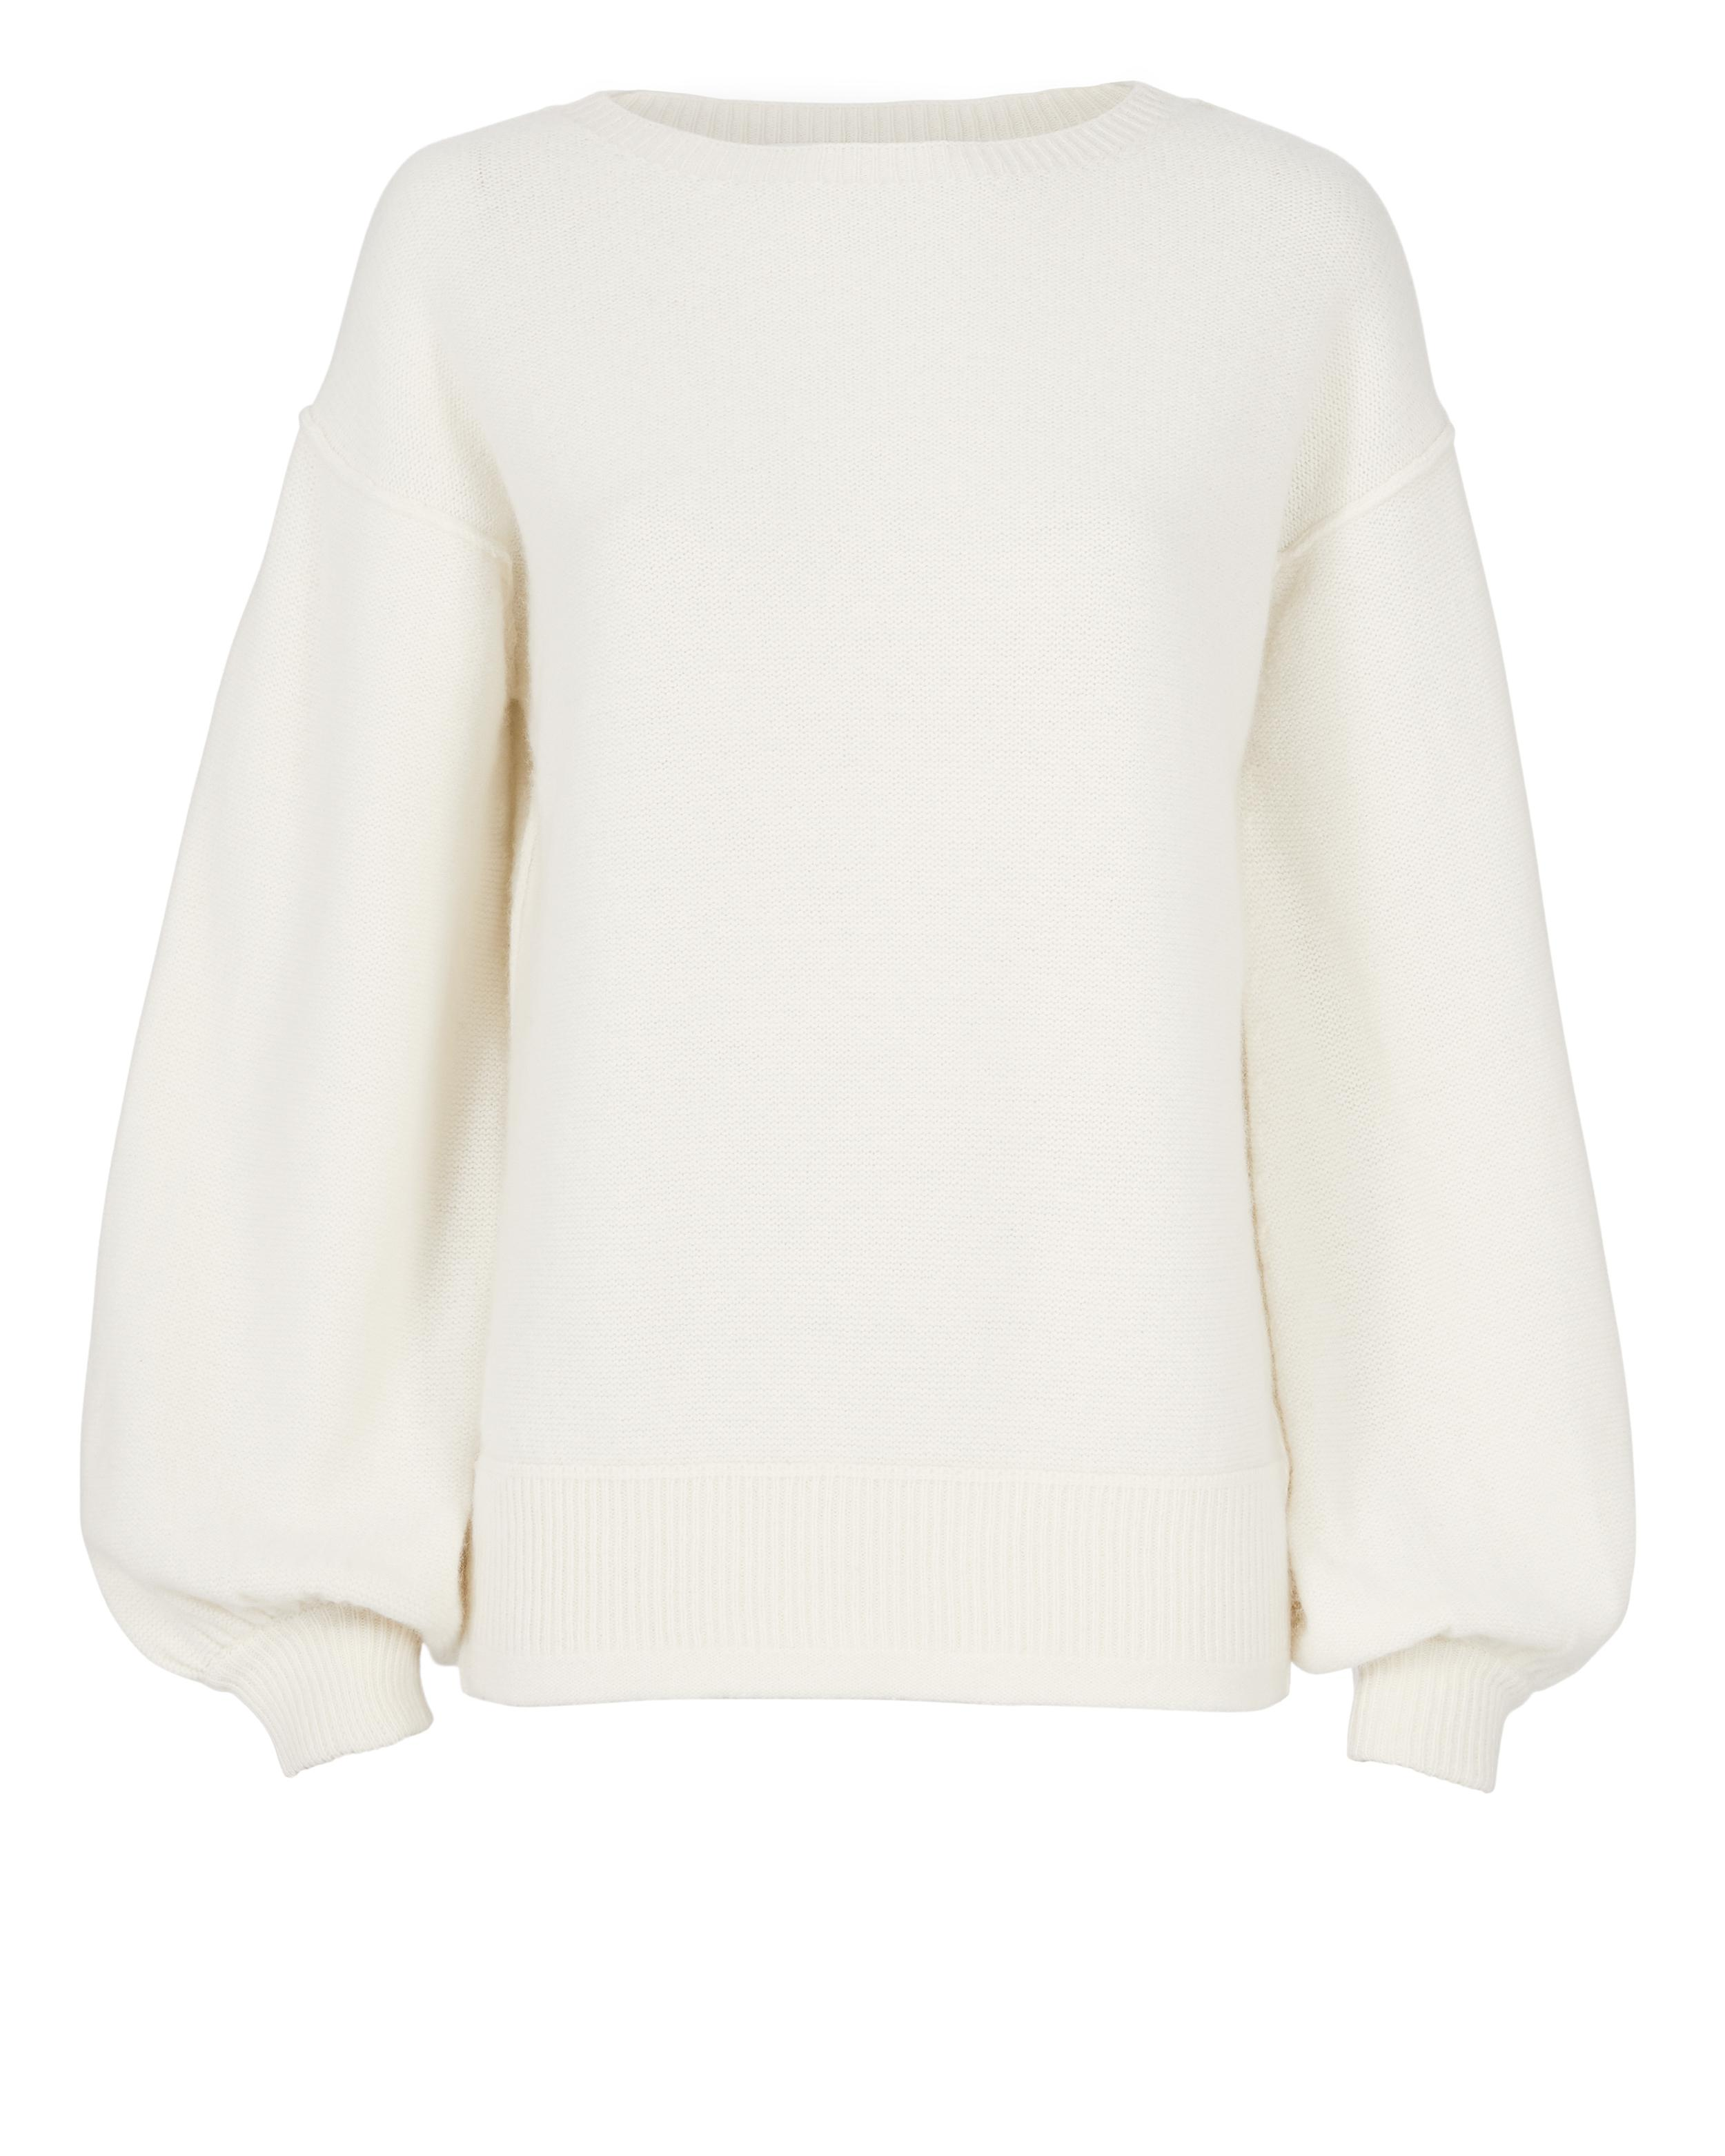 Helmut lang Balloon Sleeve Pullover Sweater in White | Lyst